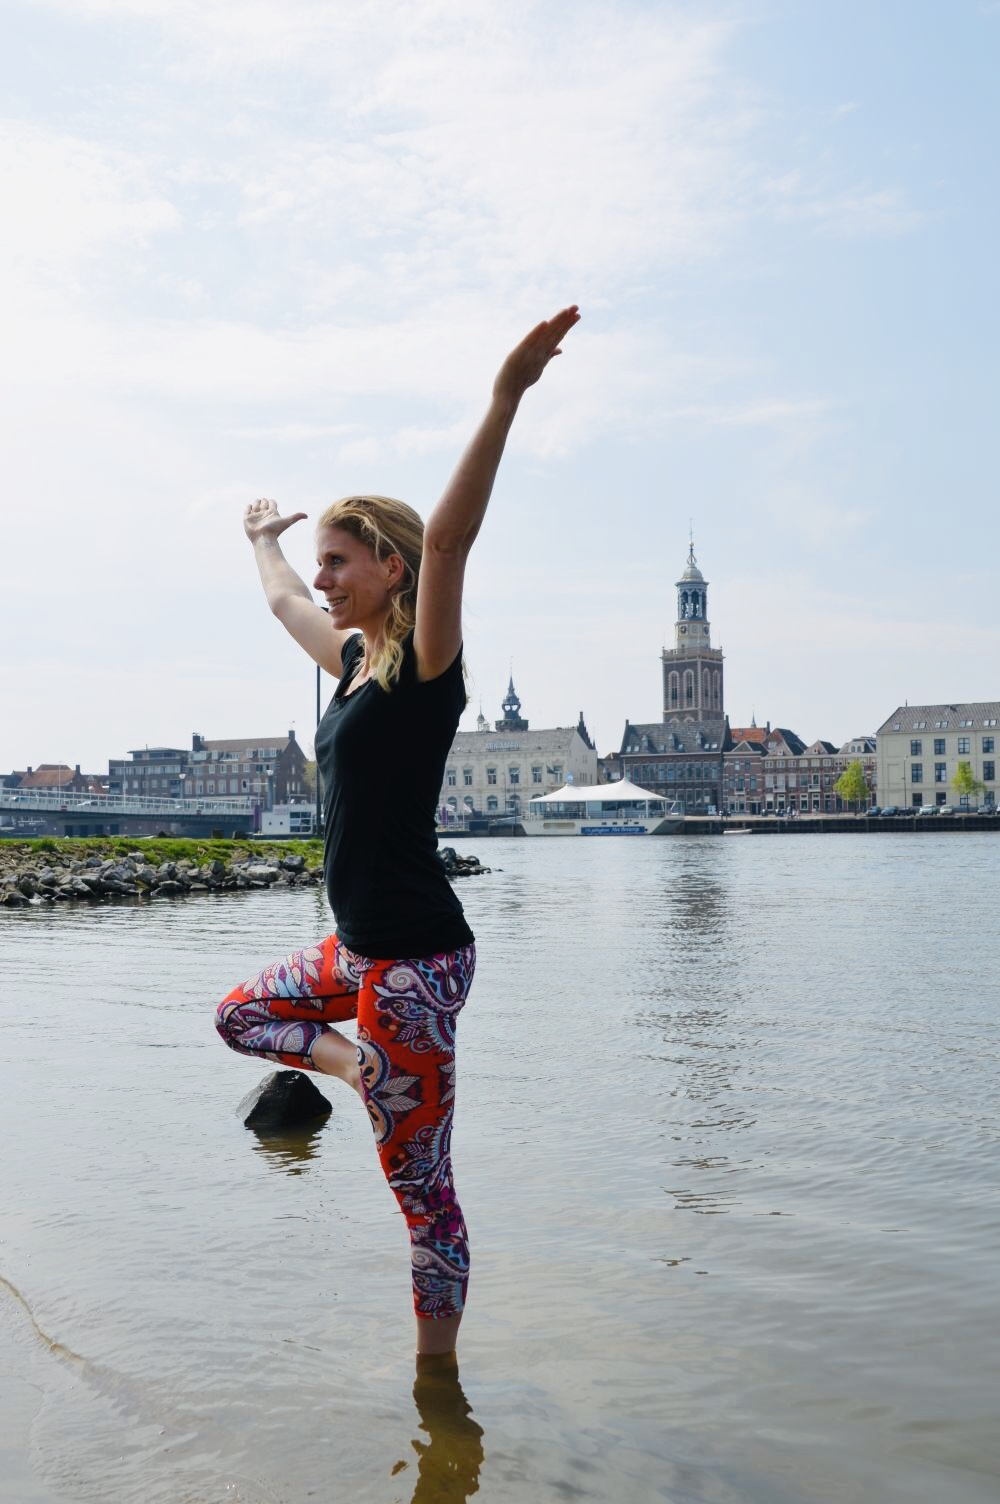 Paula Weiland yogadocent Yoga You Zwolle